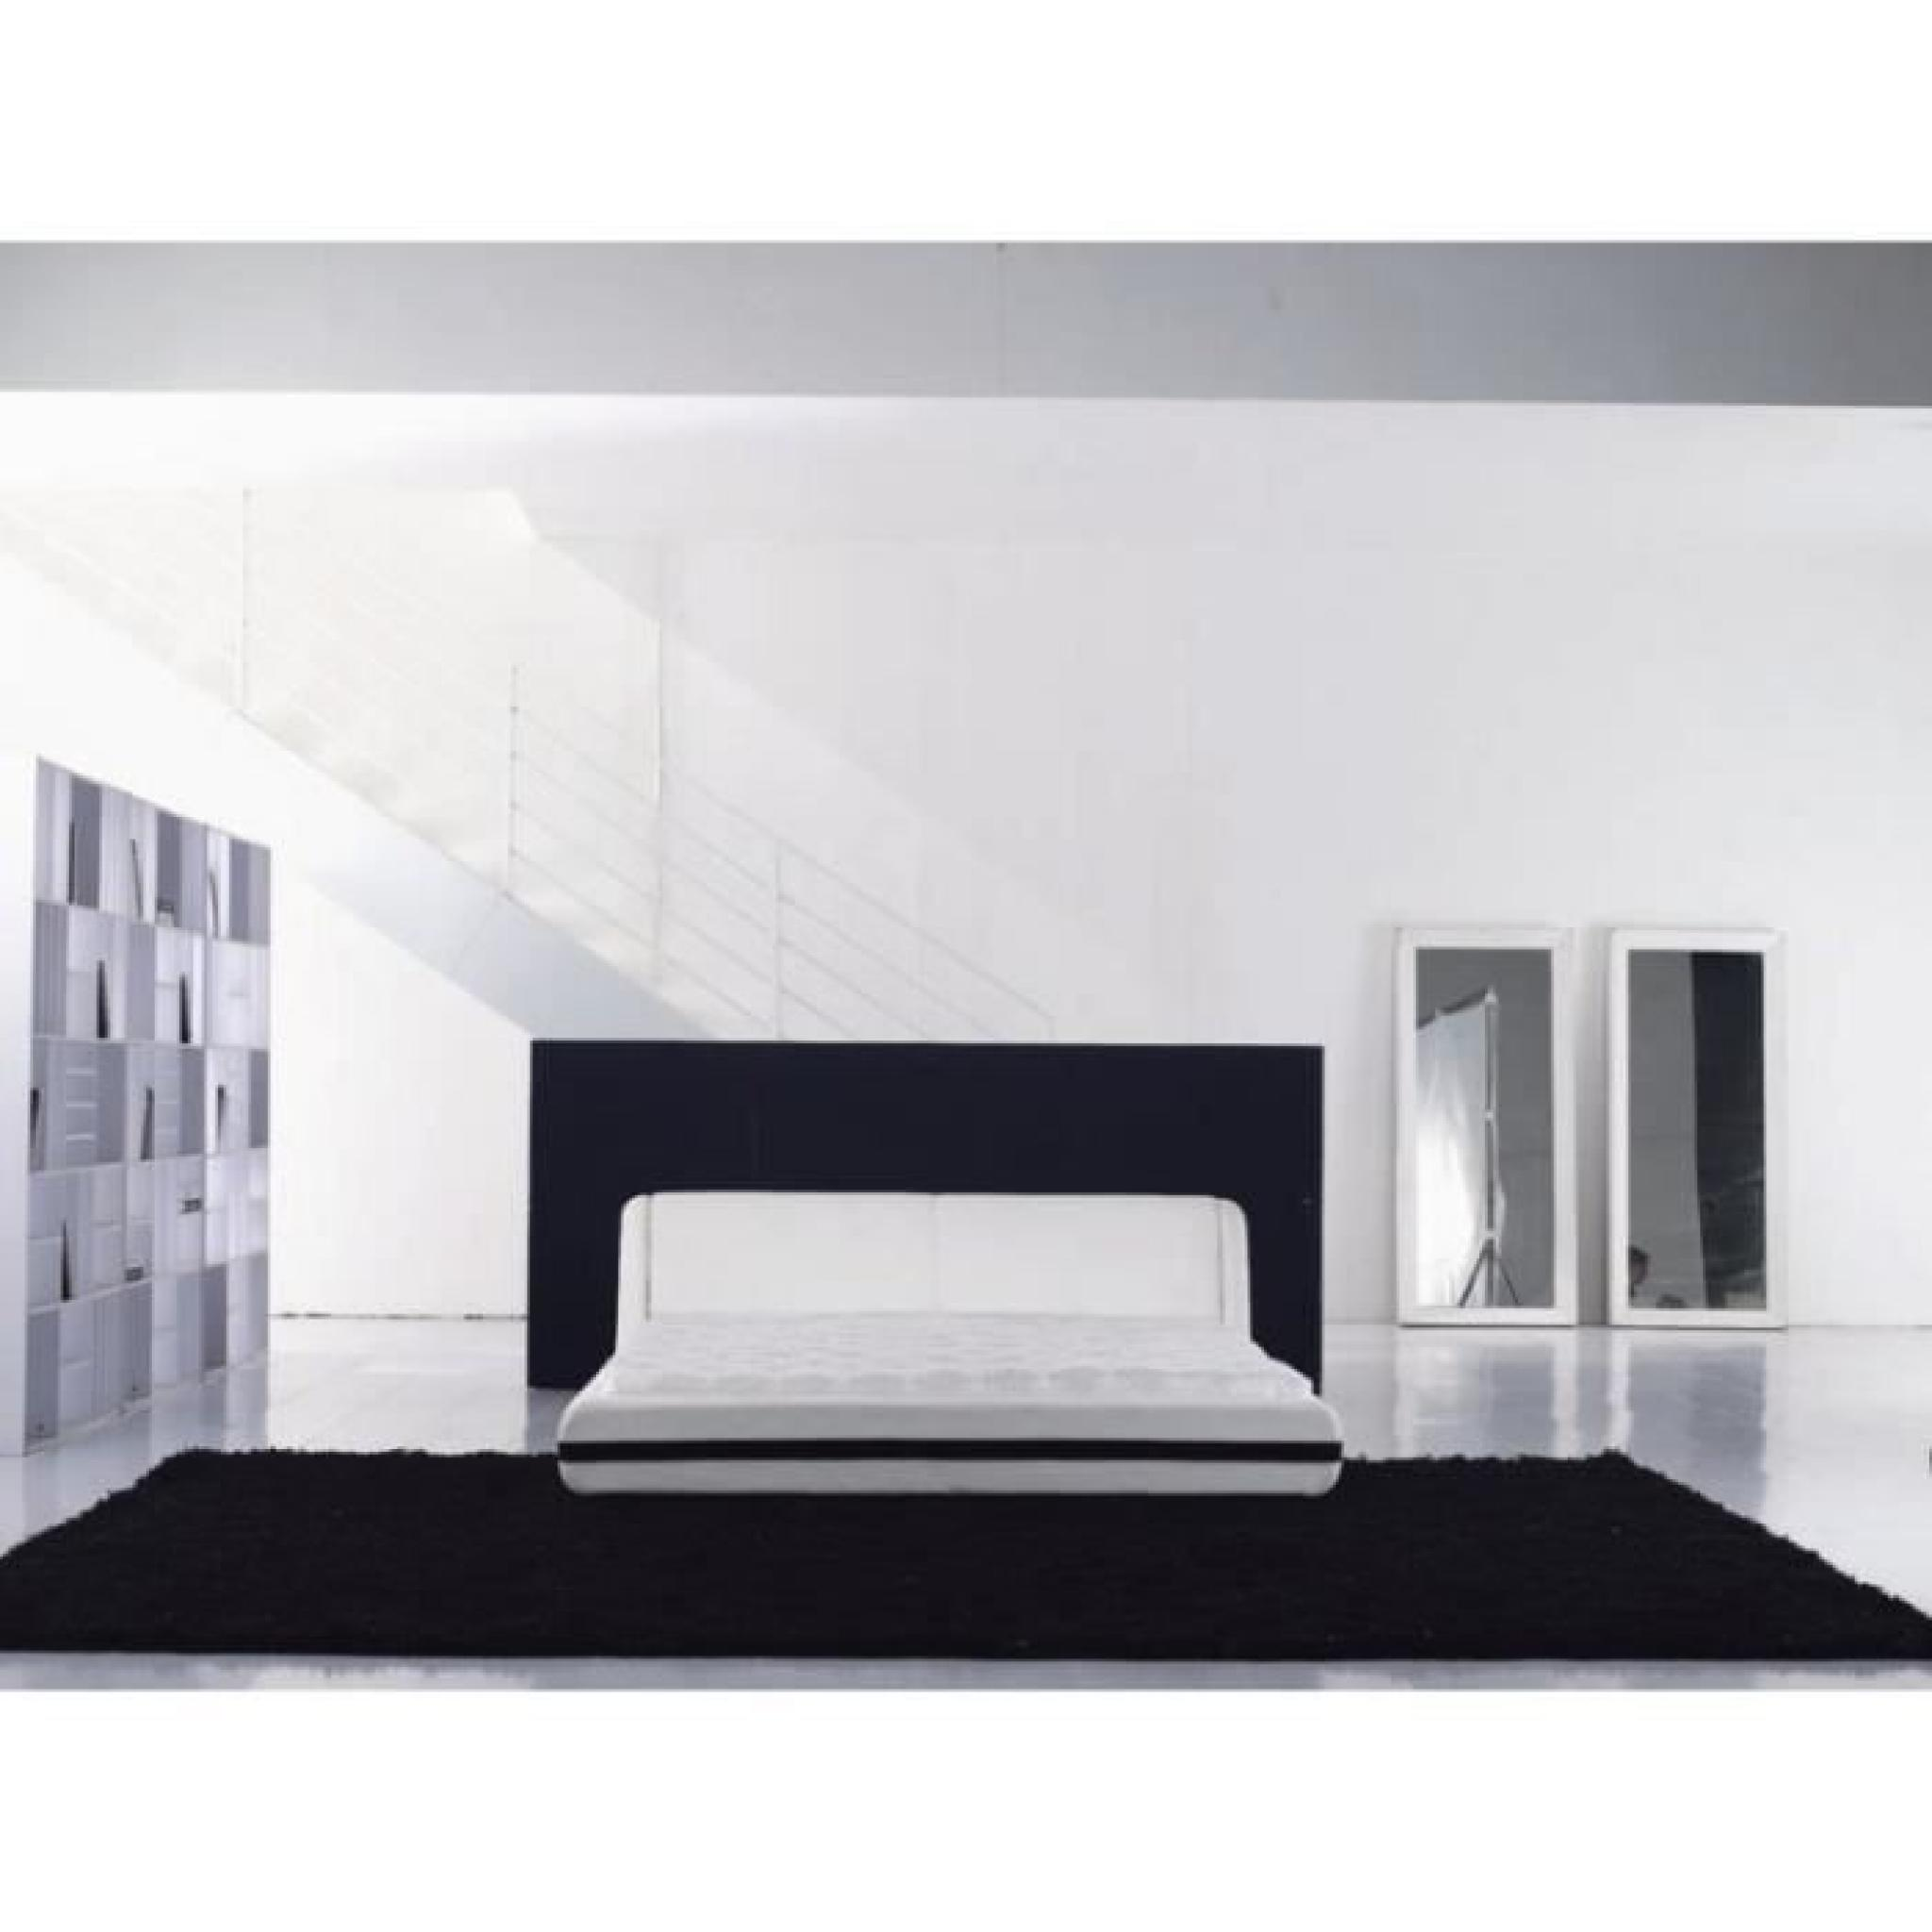 justhome rebound blanc lit rembourr en cuir cologique 160 x 200 cm achat vente lit pas cher. Black Bedroom Furniture Sets. Home Design Ideas